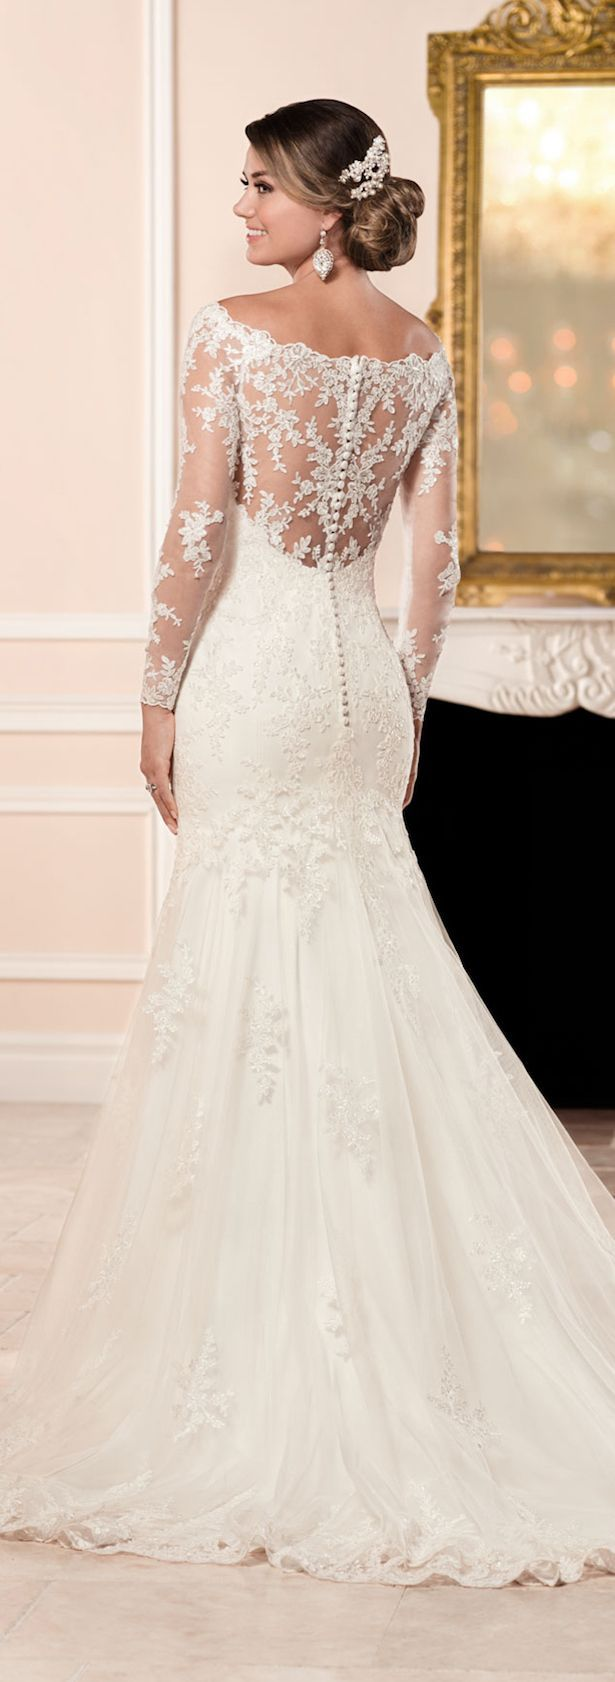 fall wedding dresses for fall 25 Best Ideas about Fall on Pinterest Nice outfits Clothing trends fall and Fall colors